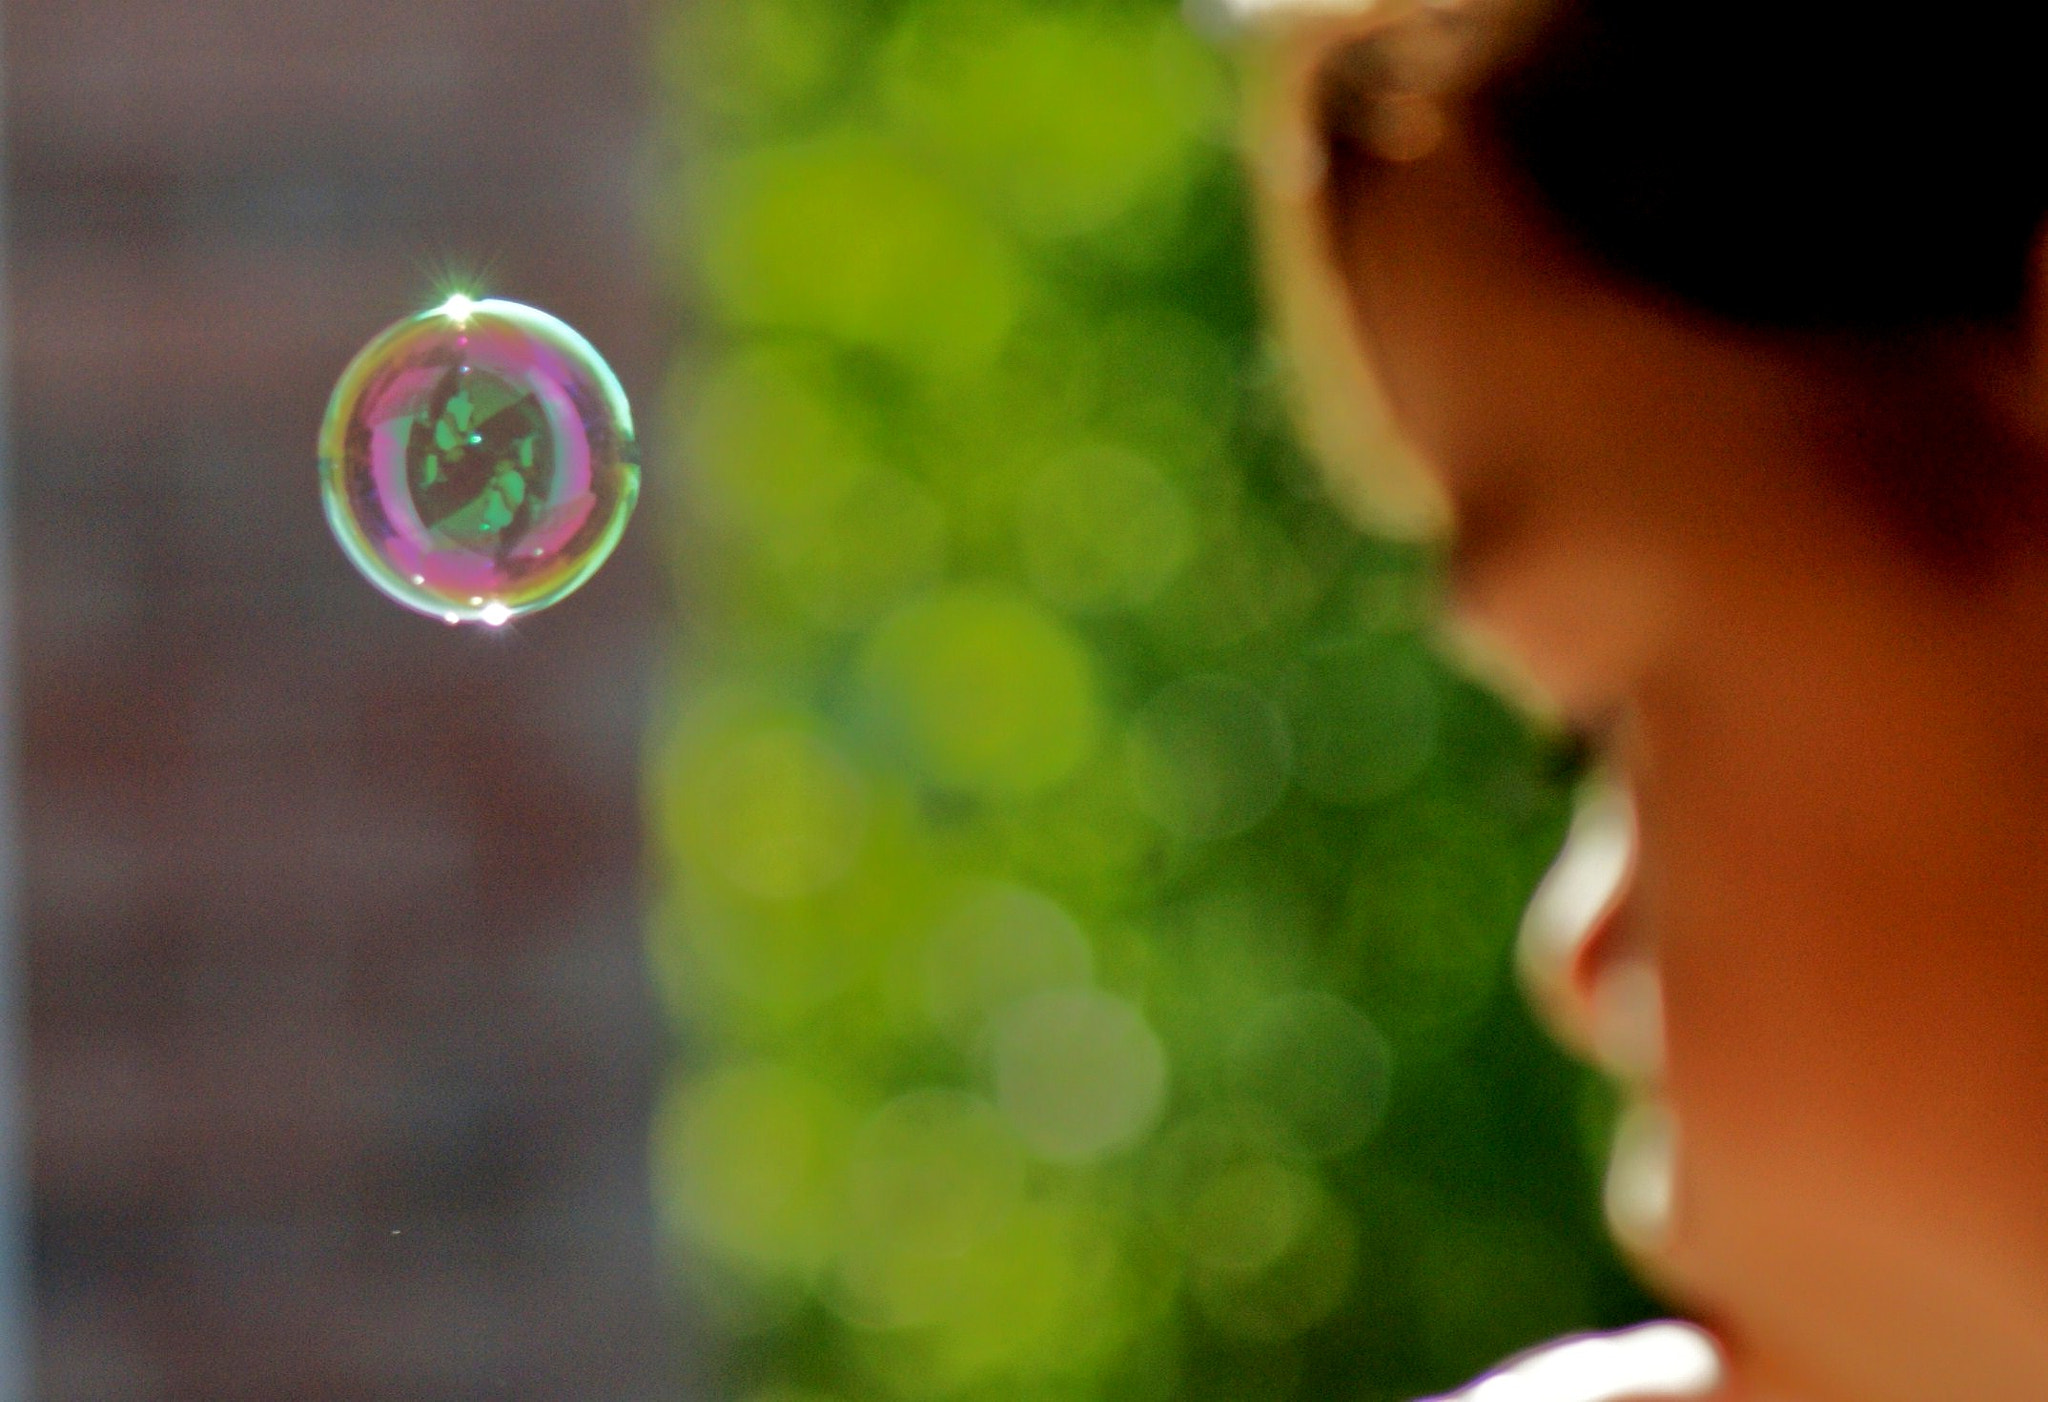 Photograph bubble girl by Lilly C. on 500px